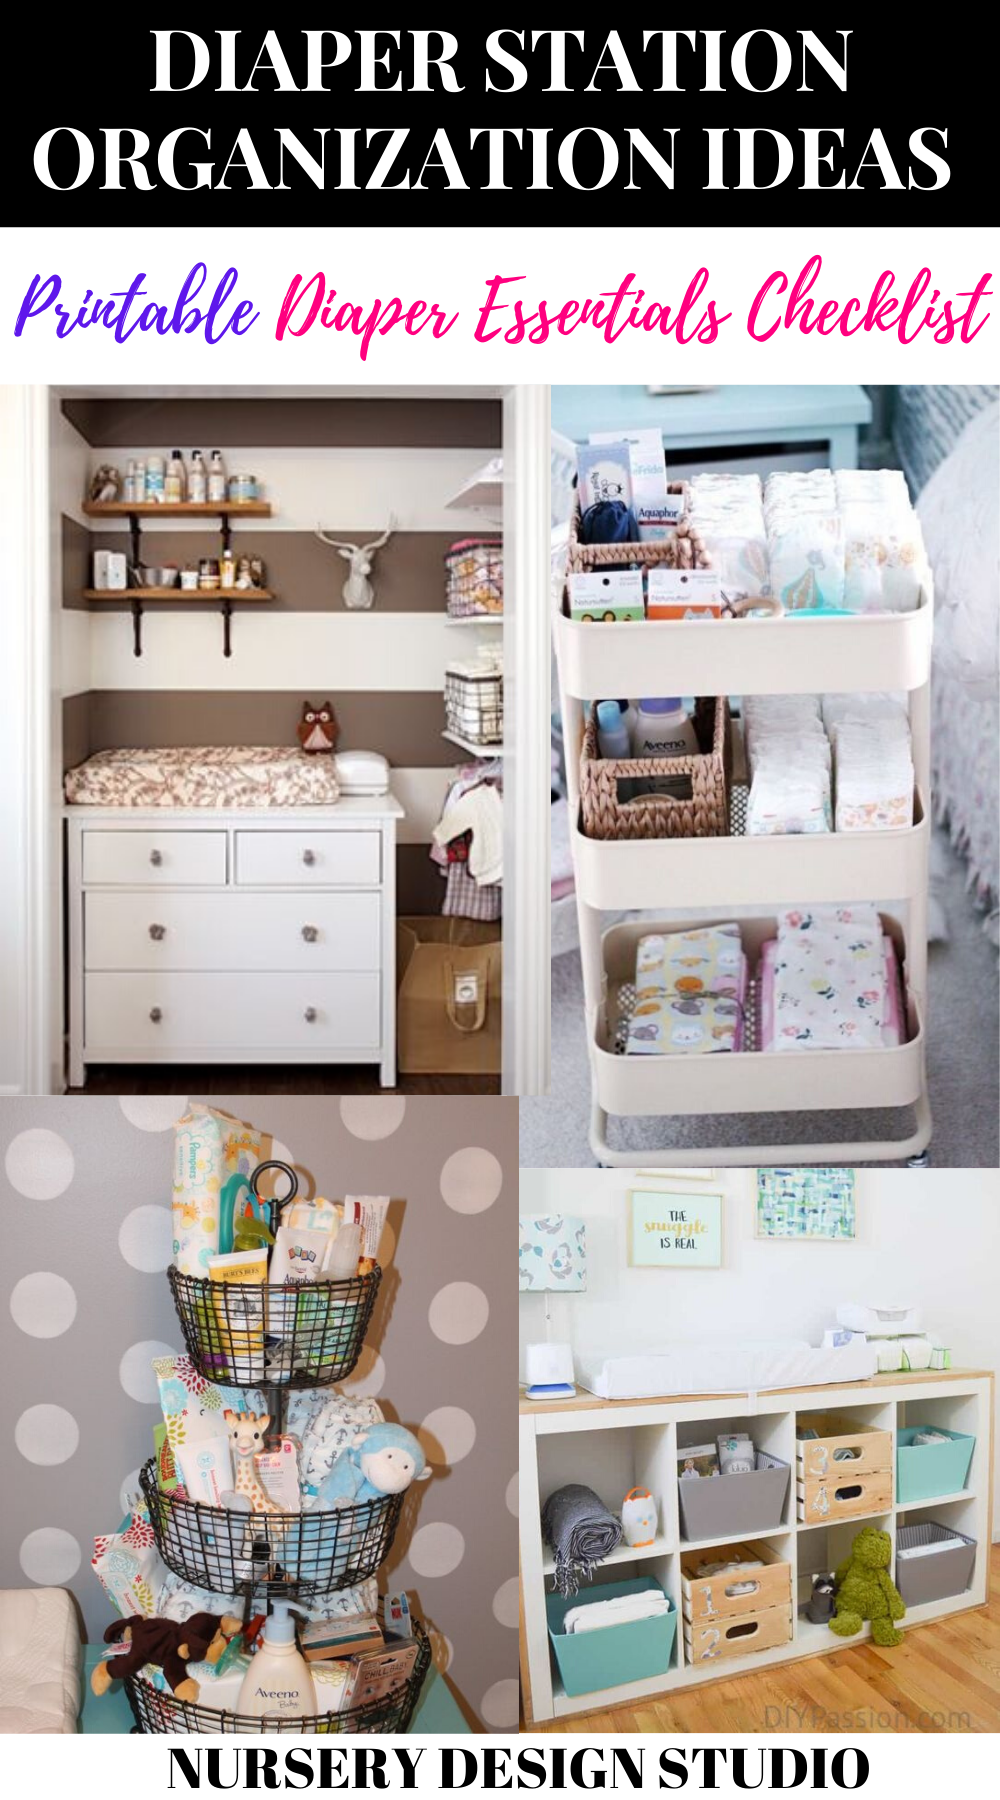 DIAPER STATION ORGANIZATION IDEAS